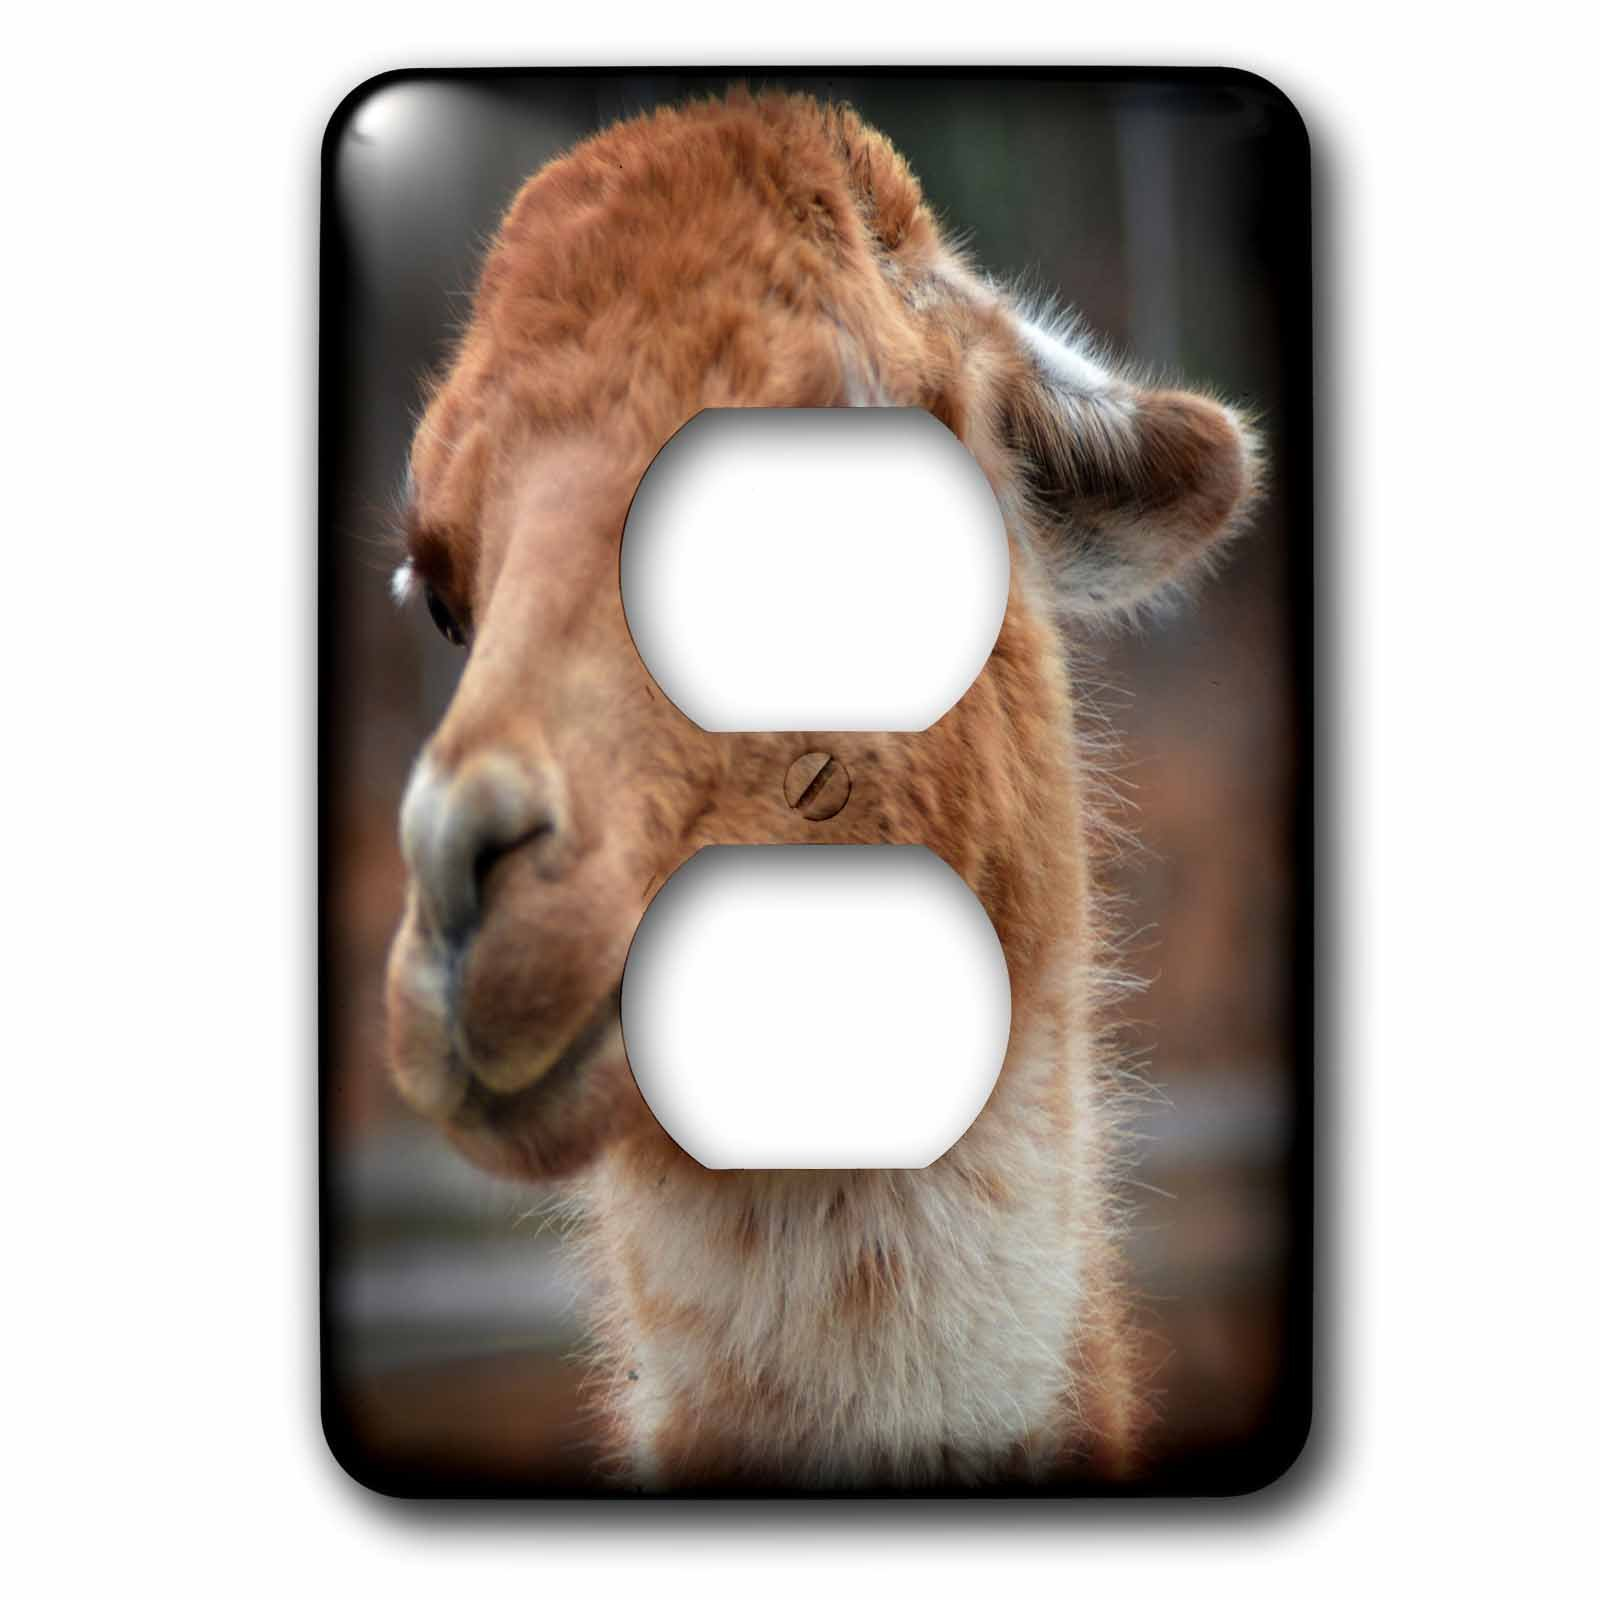 3dRose WhiteOaks Photography and Artwork - Lamas - Cute as a Button is a photo of a lama trying its best to be cute - Light Switch Covers - 2 plug outlet cover (lsp_265339_6)